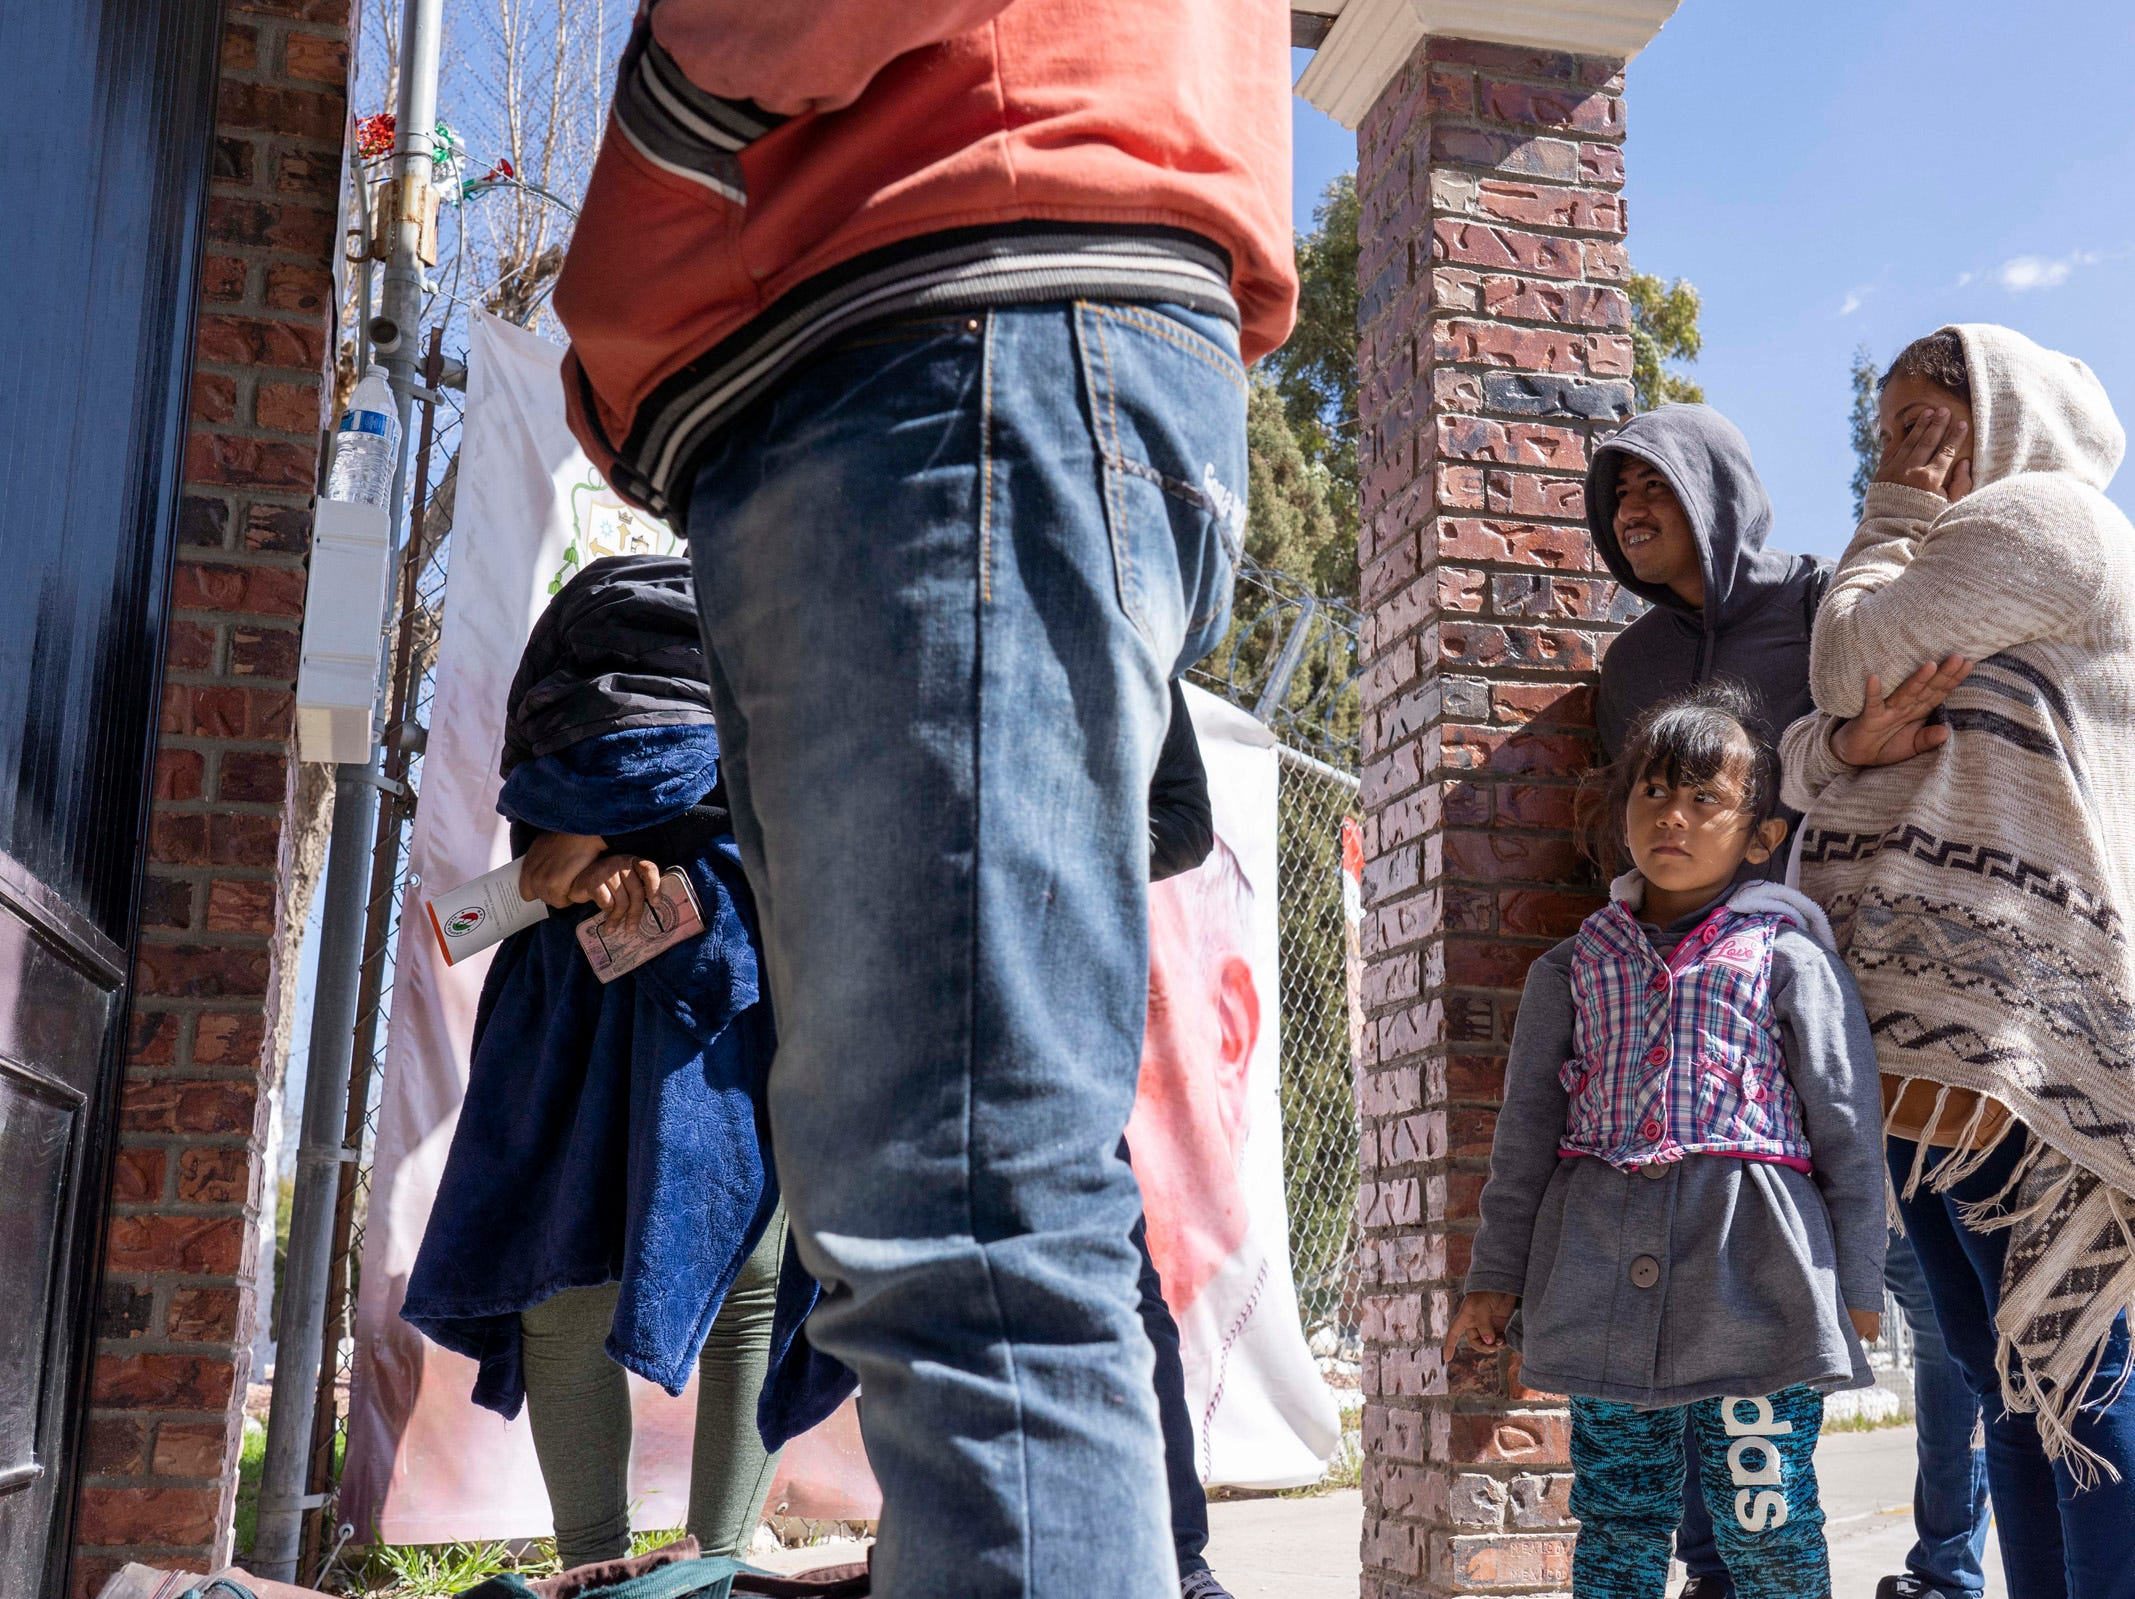 2/11/19 11:30:14 AM -- El Paso, TX, U.S.A  -- On Monday morning, dozen newly-arrived migrants from around Mexico and Latin America to the Casa del Migrante, the Catholic-run shelter for migrants located in Ciudad Juarez. 